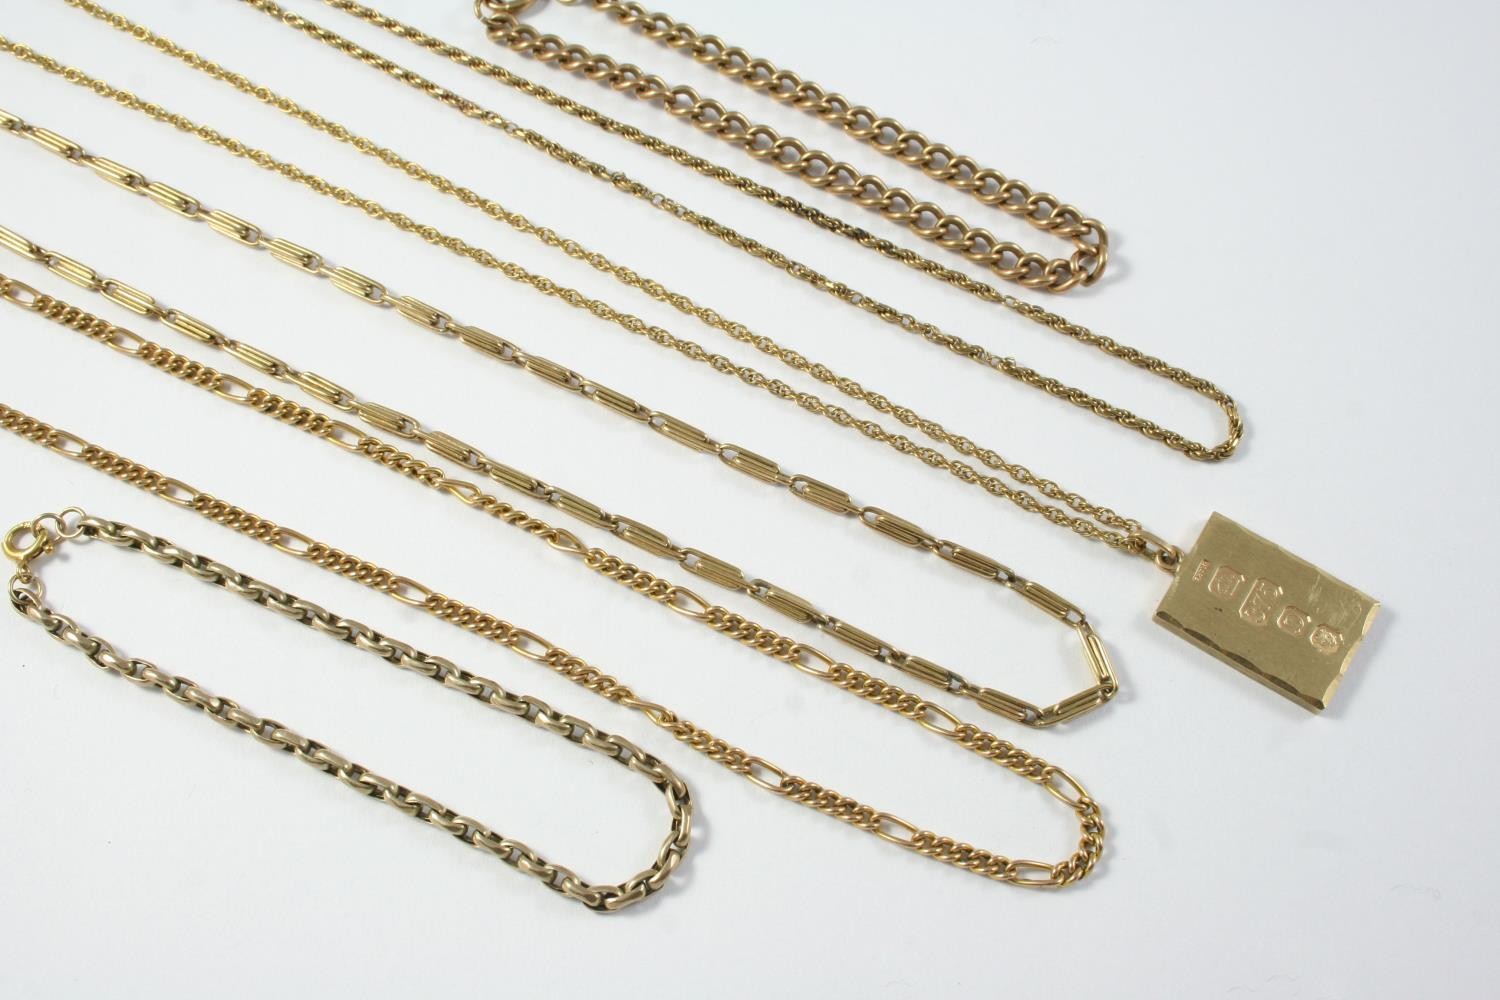 A GOLD FANCY LINK CHAIN NECKLACE 43.5cm long, together with a 9ct gold ingot pendant, on a gold